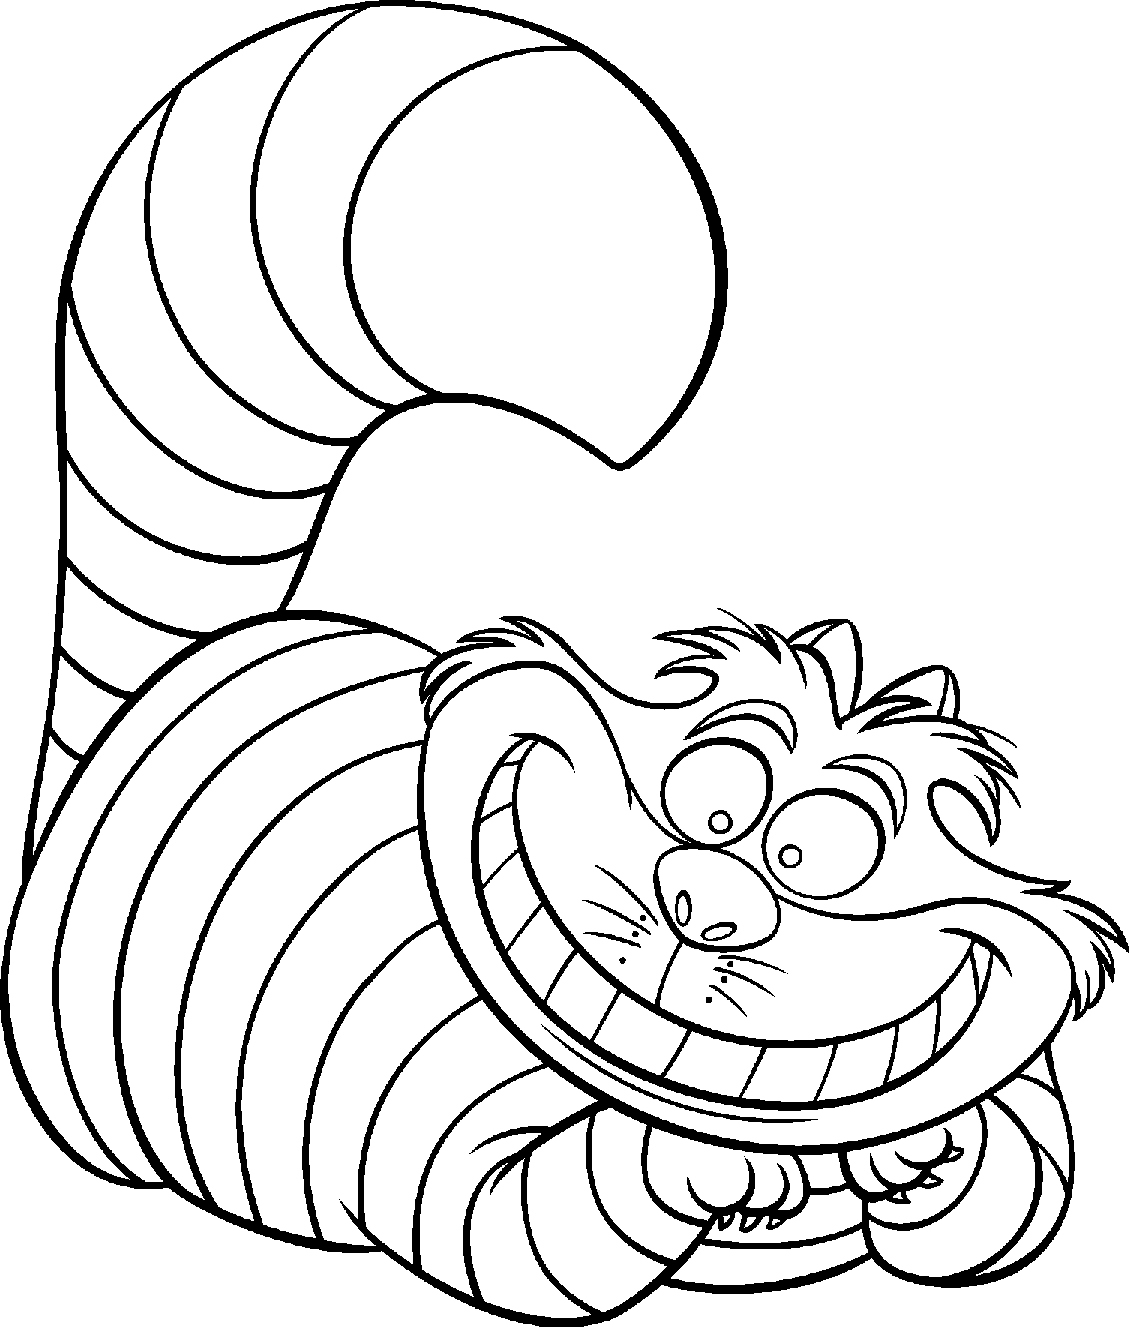 1129x1327 Alice In Wonderland Caterpillar Coloring Pages Funycoloring